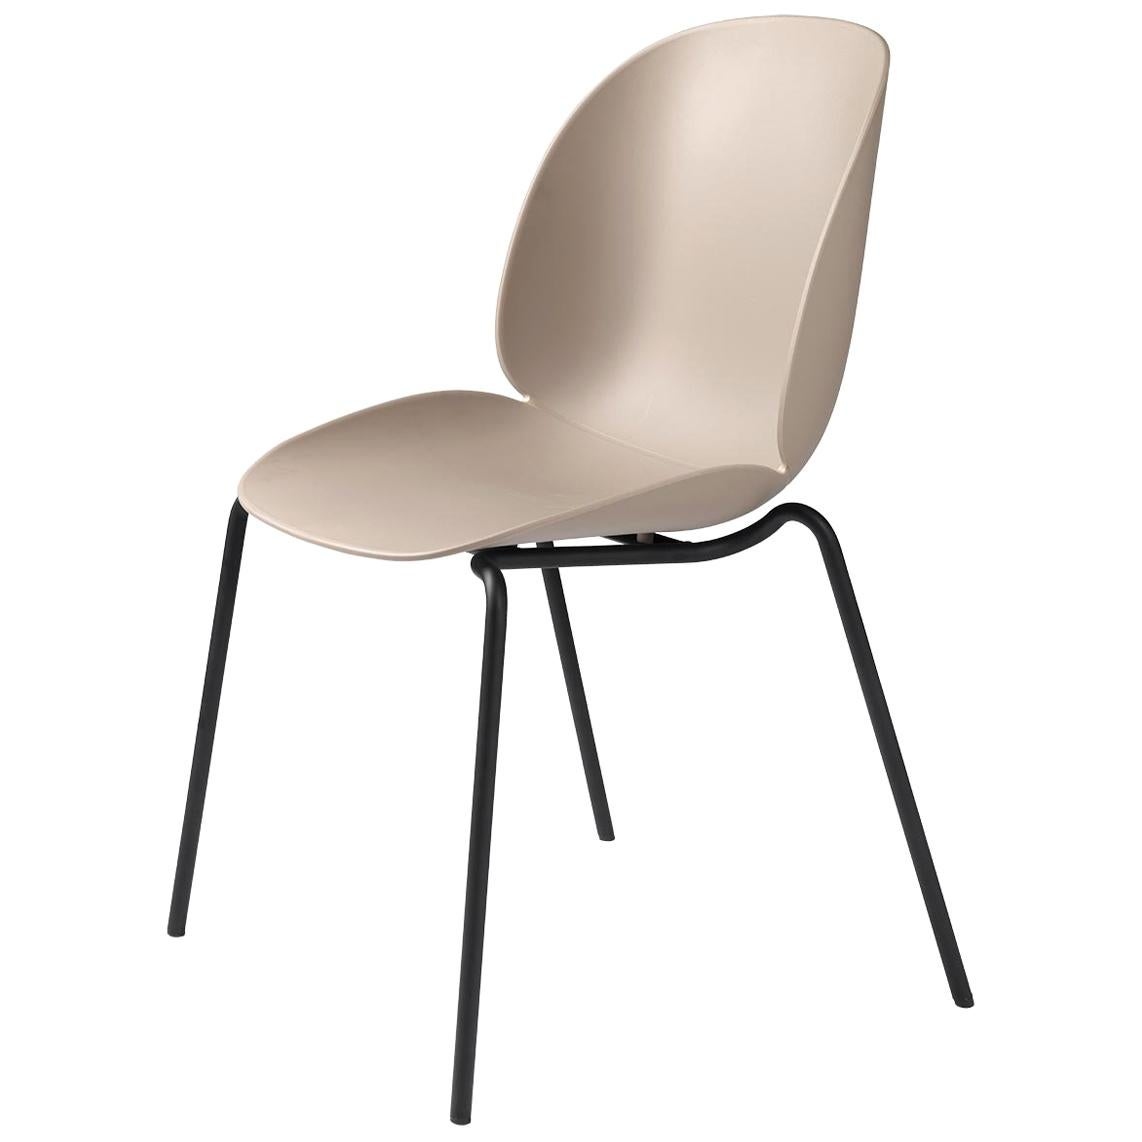 Beetle Dining Chair, Un-Upholstered, Stackable Base, Matte Black